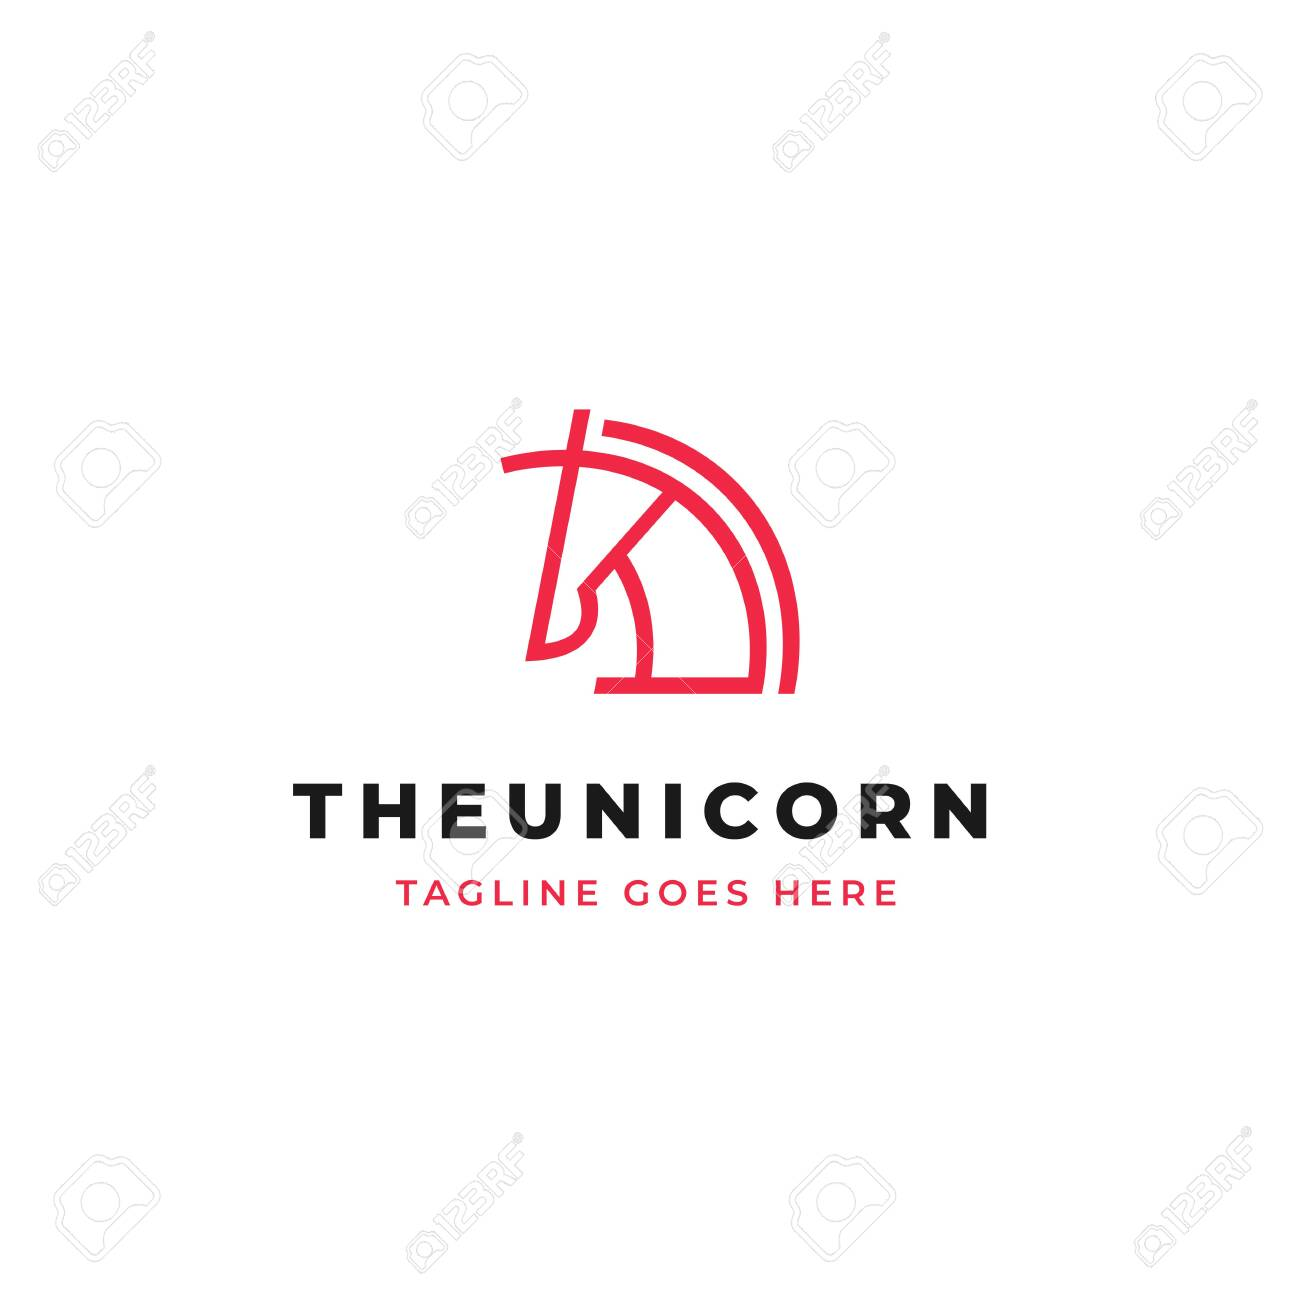 Unicorn Head Line Art Logo Design Simple Horse Head With Horn Royalty Free Cliparts Vectors And Stock Illustration Image 122013837